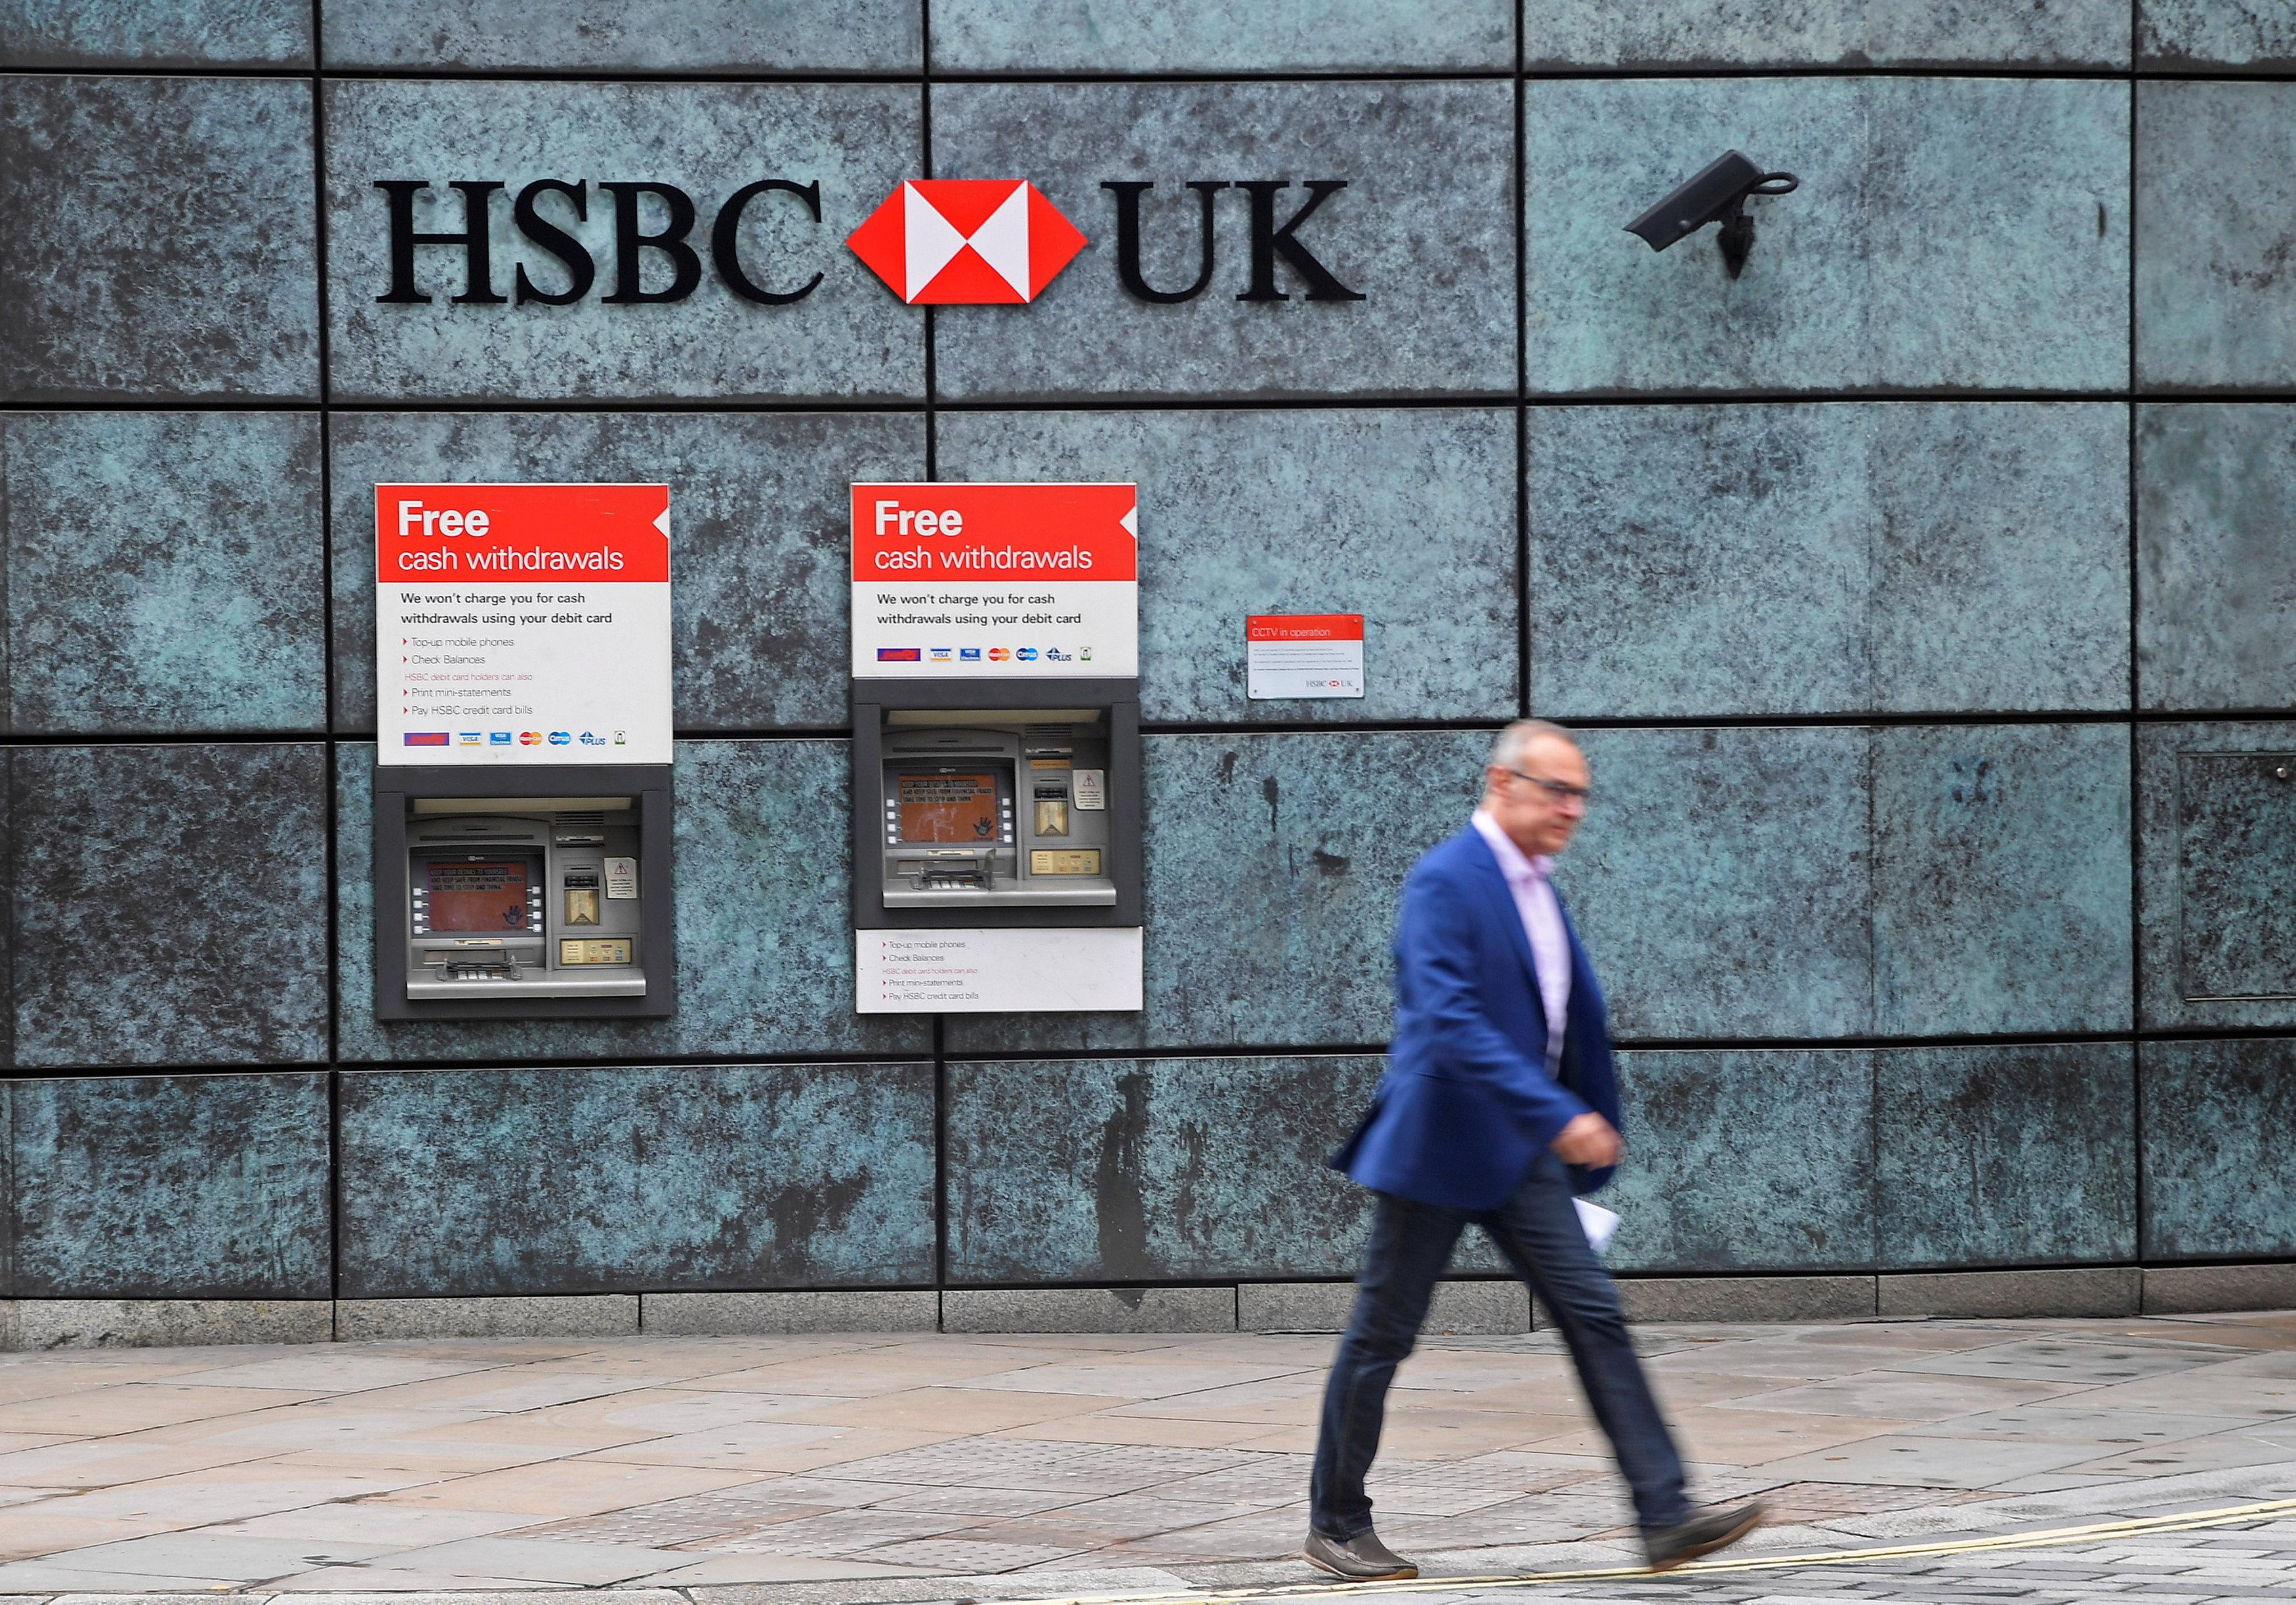 Personal trainer, charity caught up in HSBC account freeze - Reuters